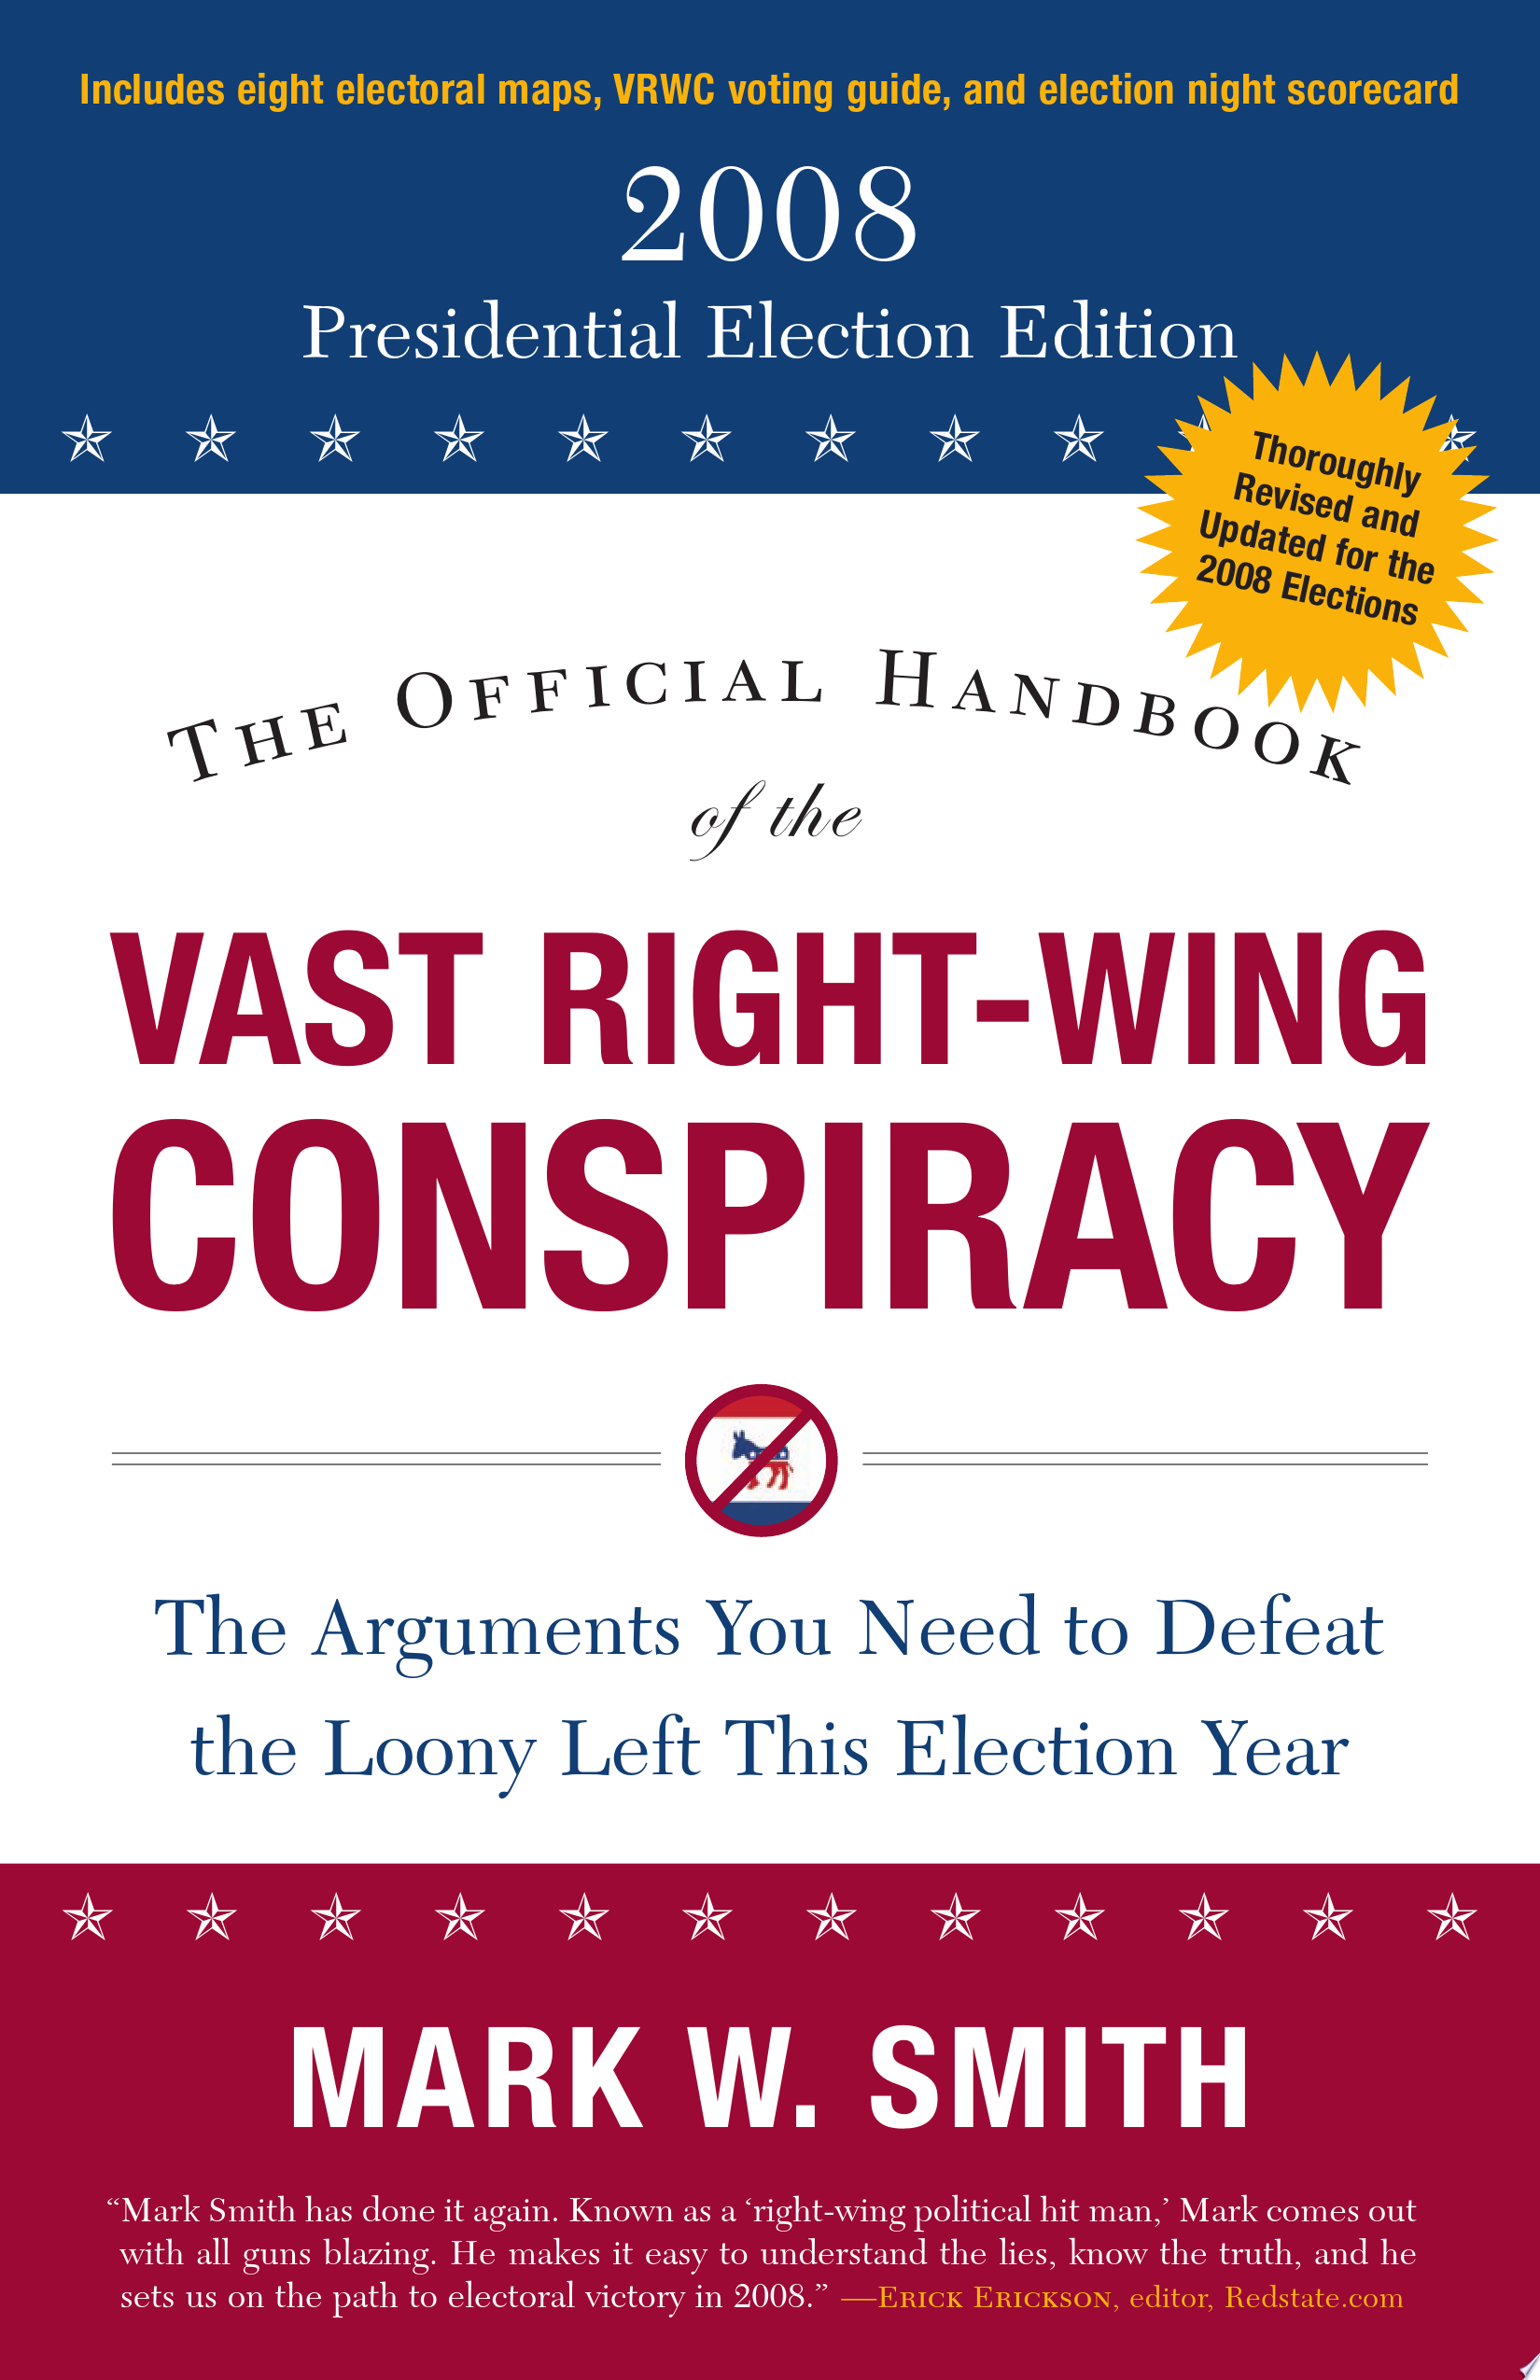 The Official Handbook of the Vast Right Wing Conspiracy 2008